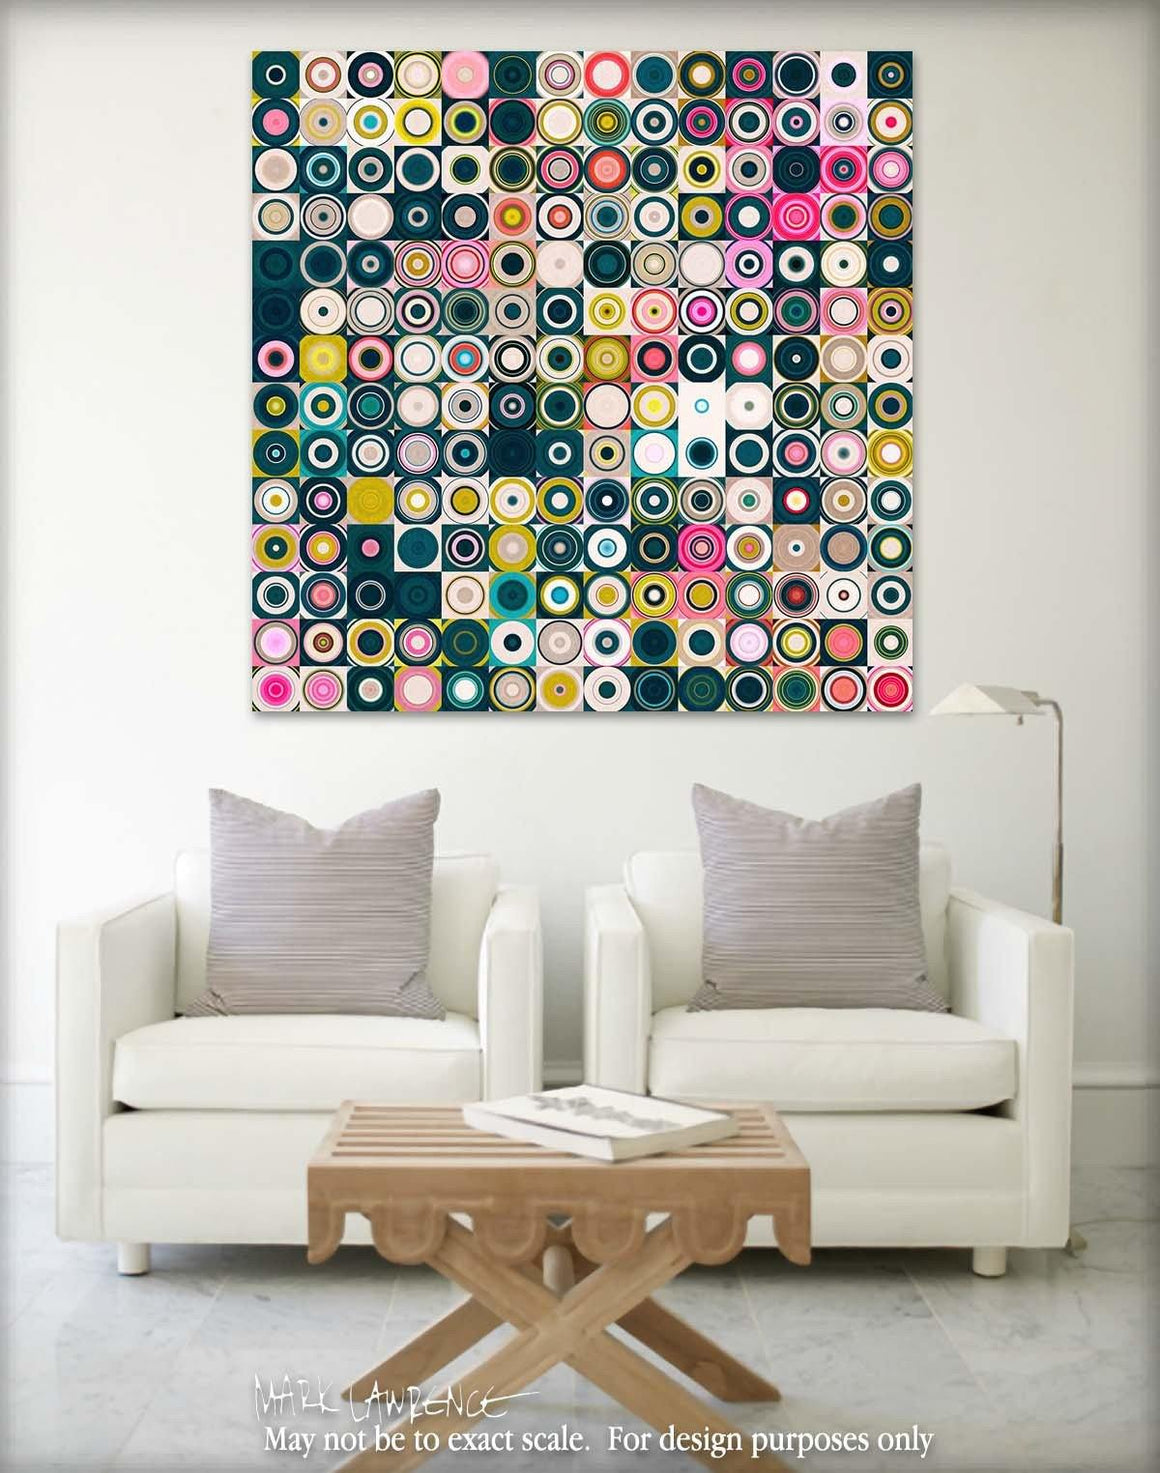 Interior Design Focal Art Inspiration-Circles & Squares #24. Exclusive Traditional Fine Art. Original limited edition signed canvas & paper giclees by internationally collected artist Mark Lawrence